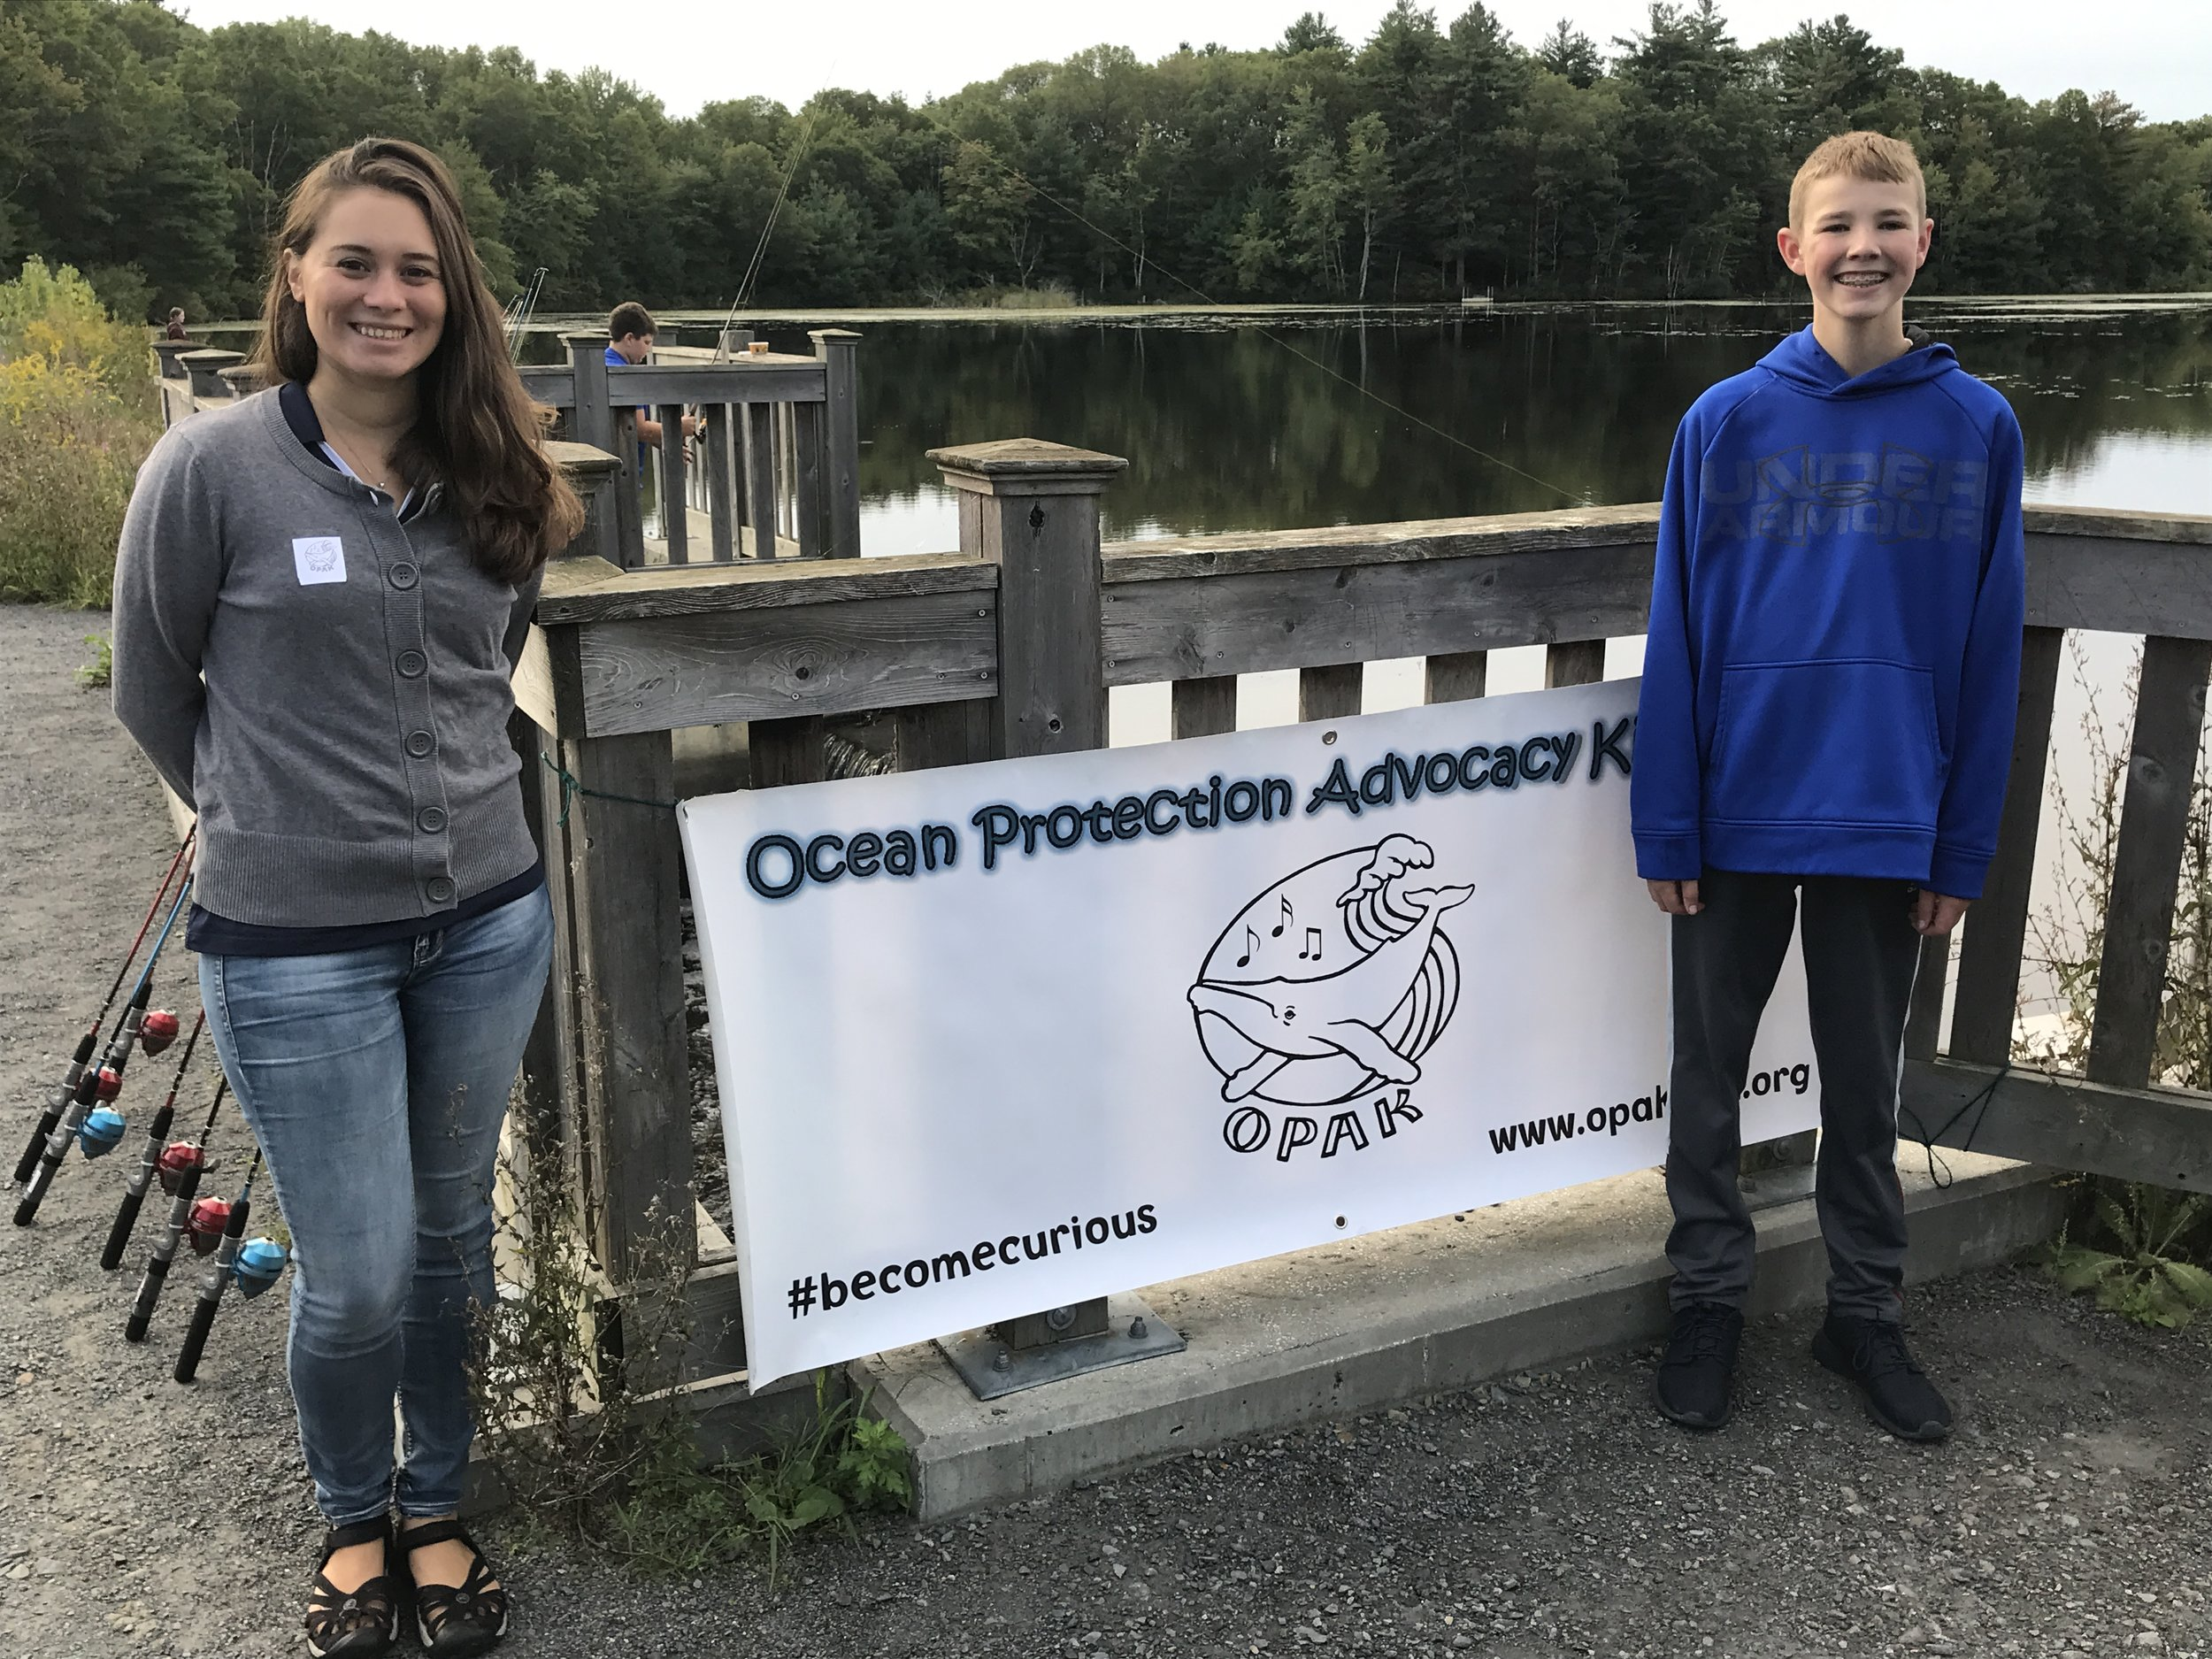 Brendan and Melanie (OPAK Co-Founder) get ready for the Fishing Derby!